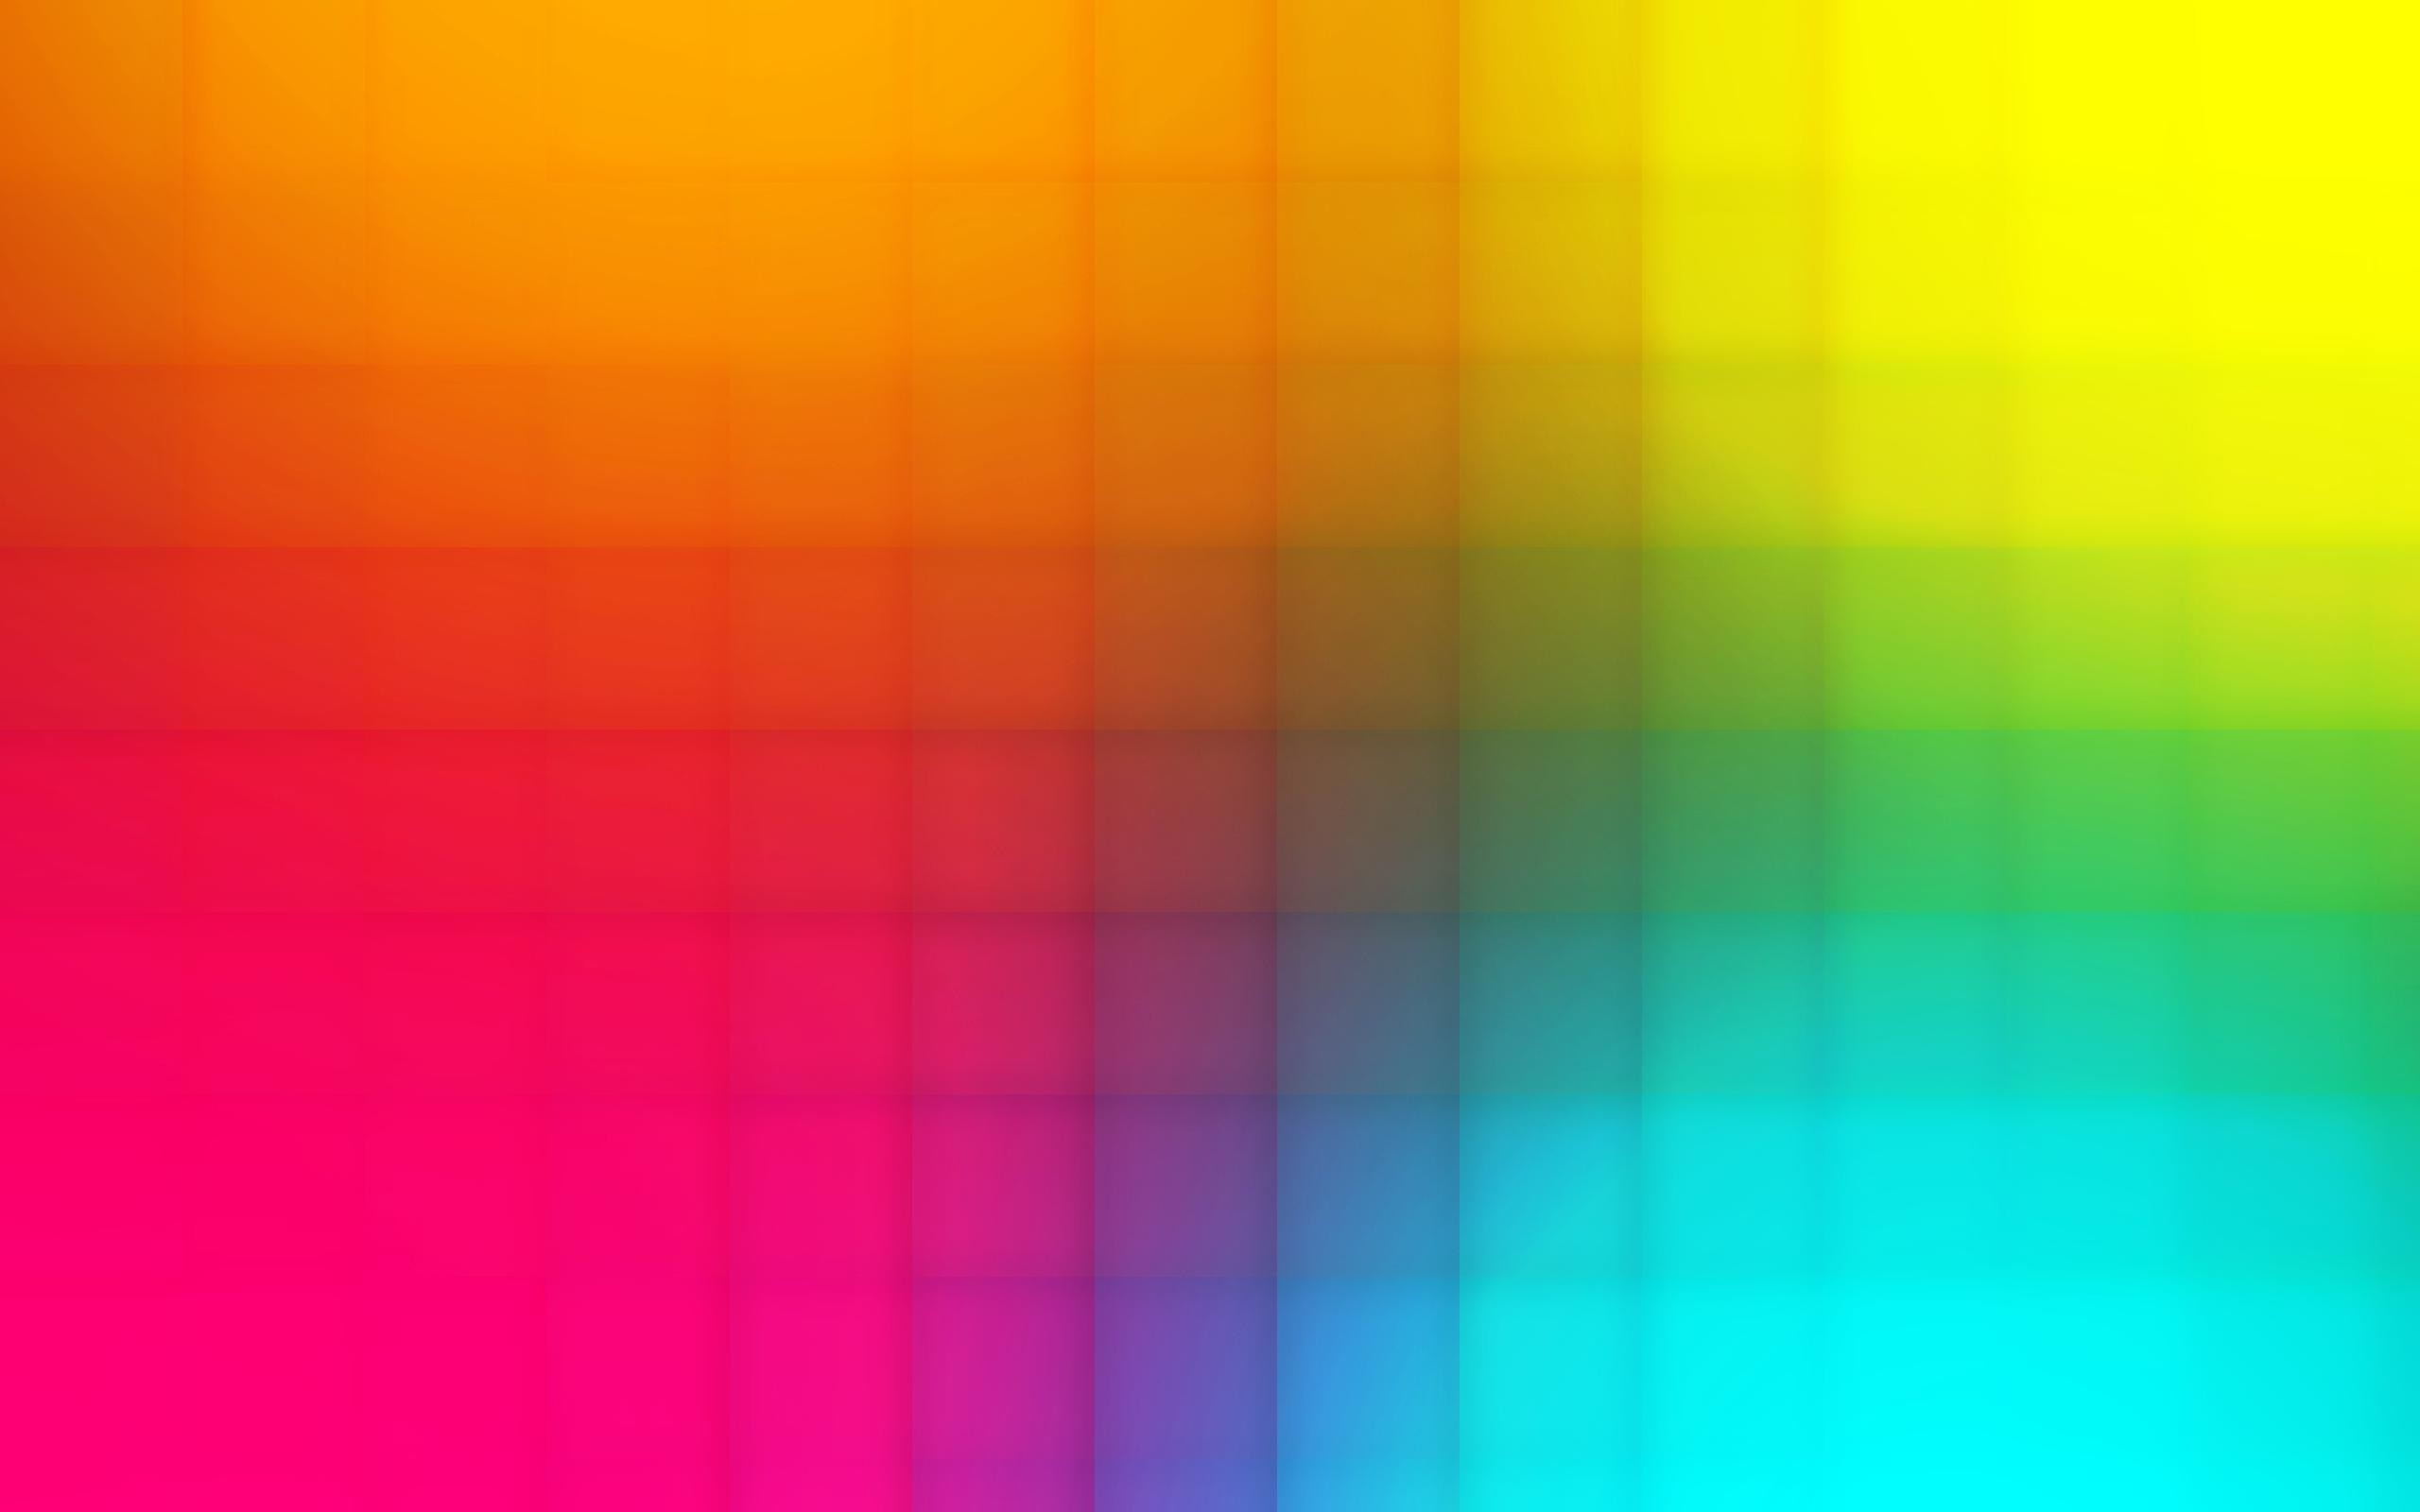 2560x1600 Multicolor Wallpaper | Wallpaper Download